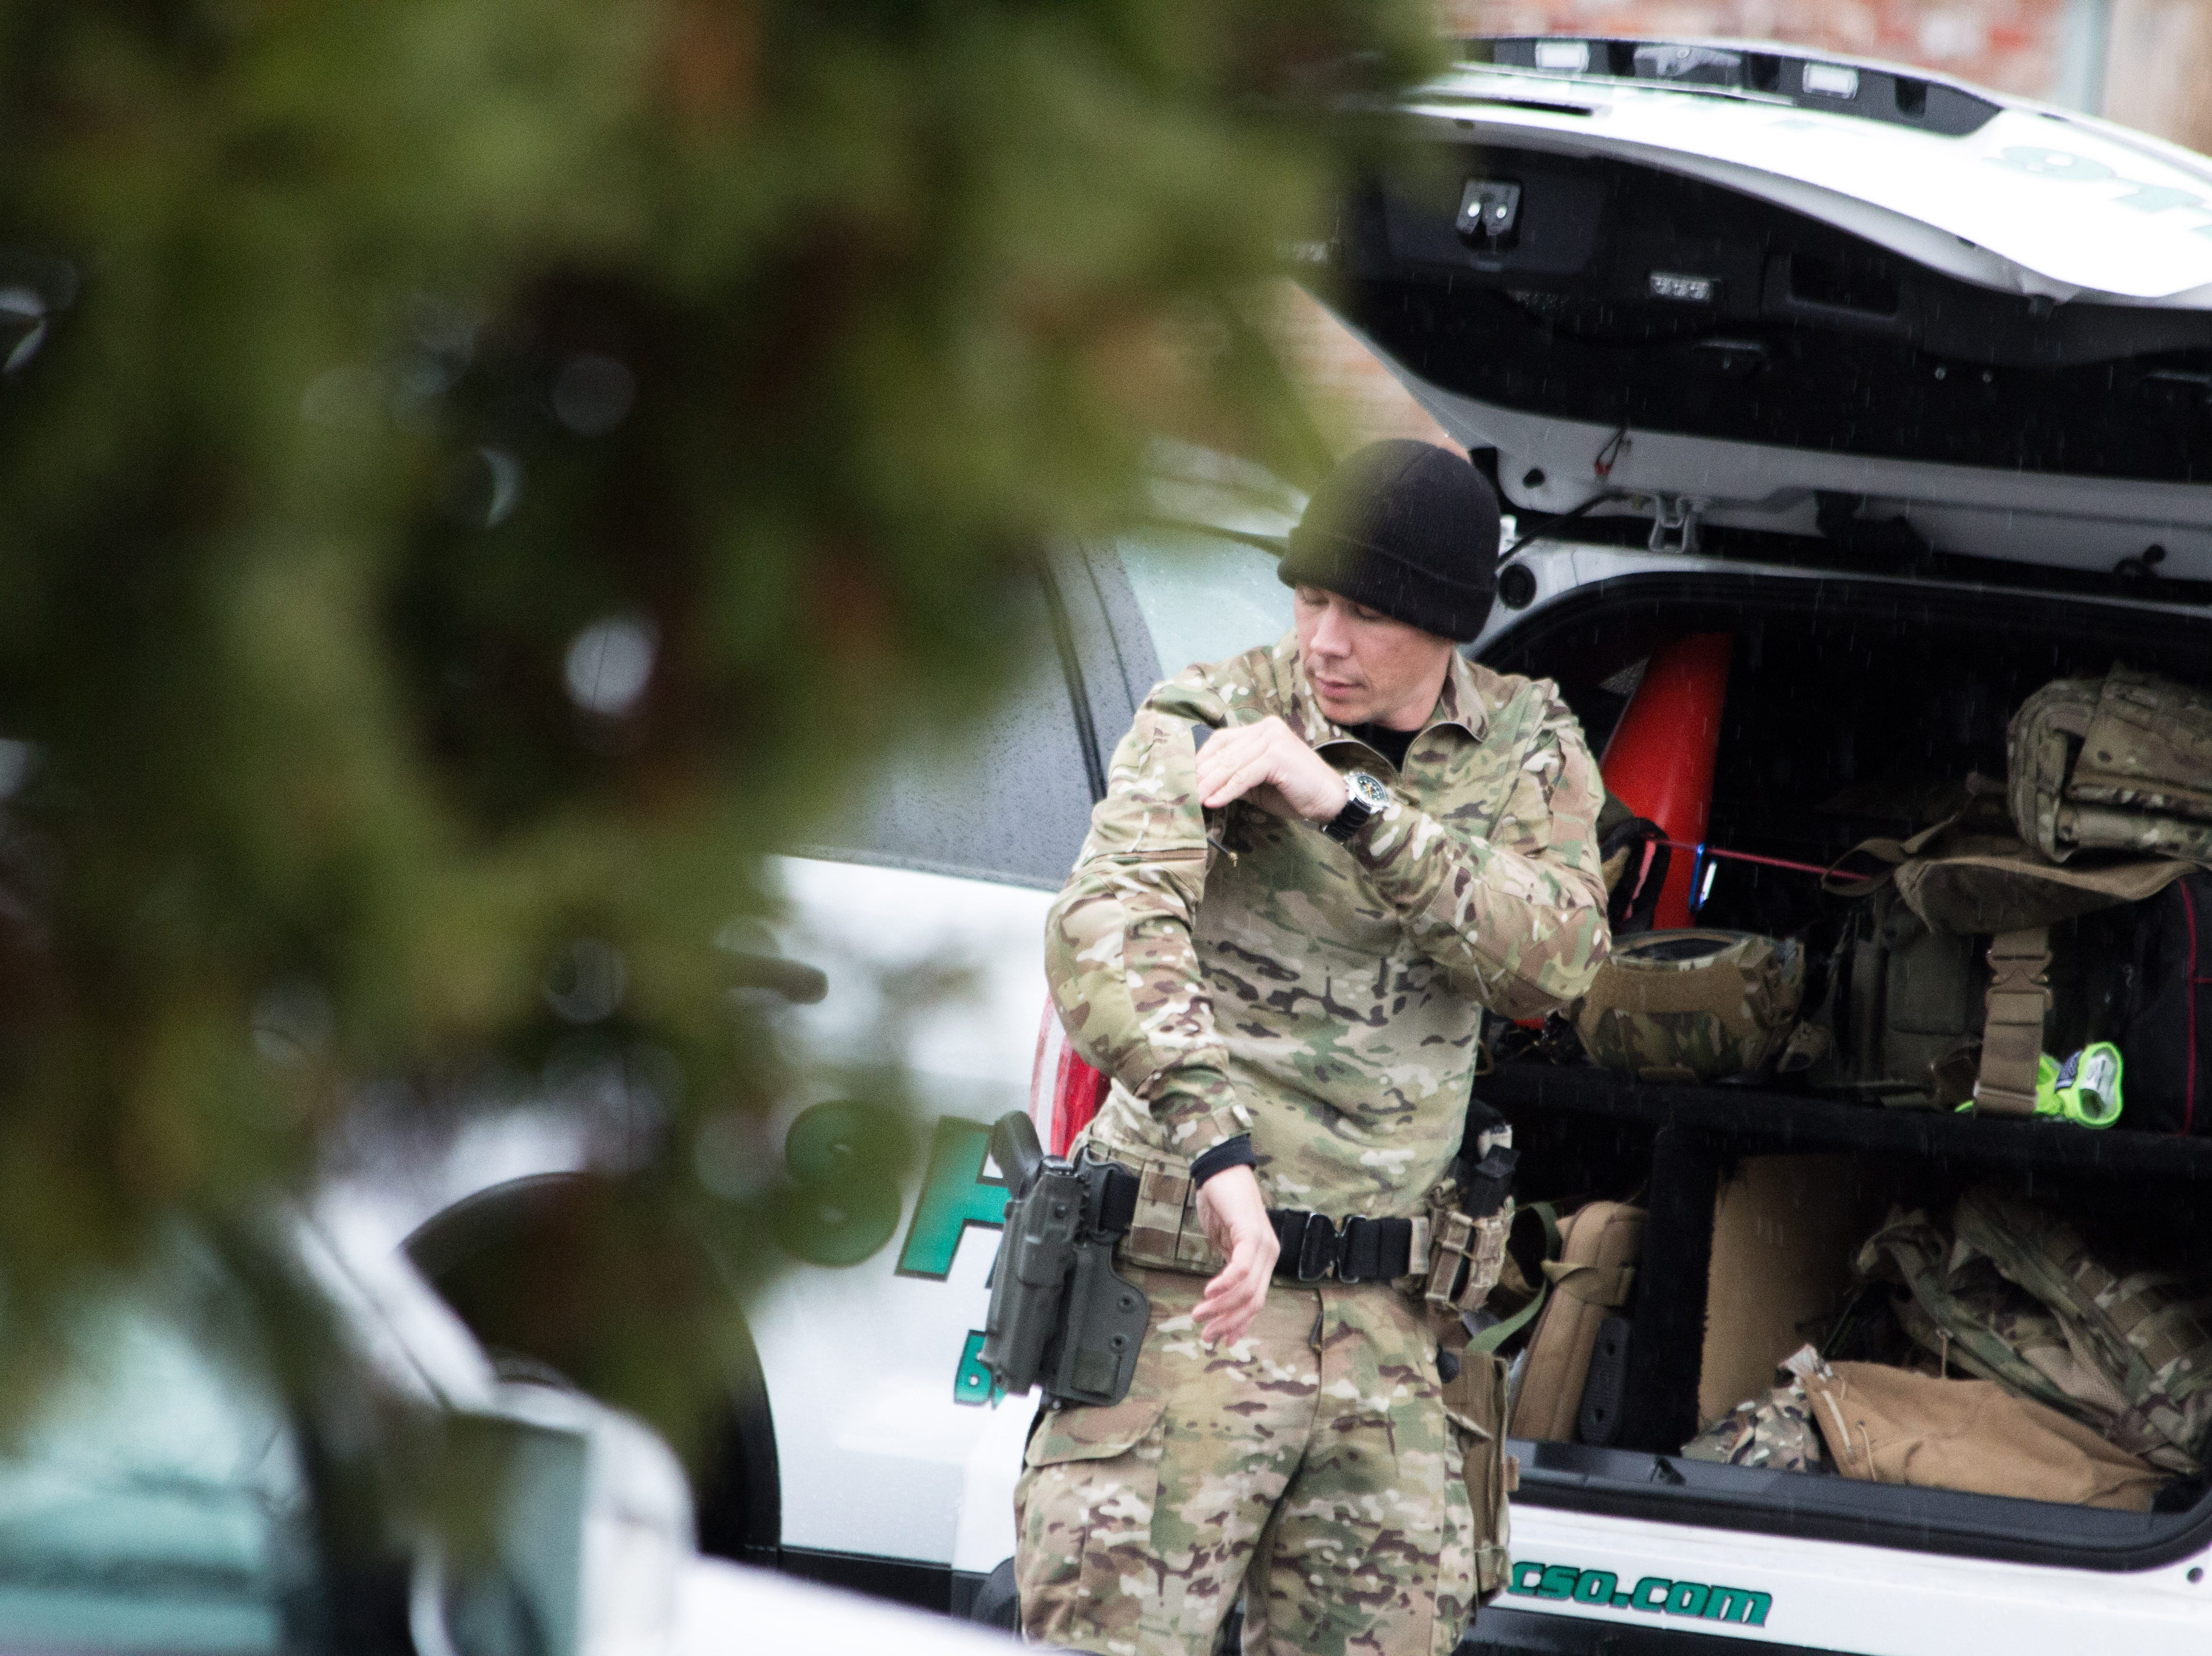 An officer adjusts his uniform before returning to the scene of a standoff that lasted roughly 8 hours at a Blount County apartment complex on Dec. 8, 2018. One man was killed.